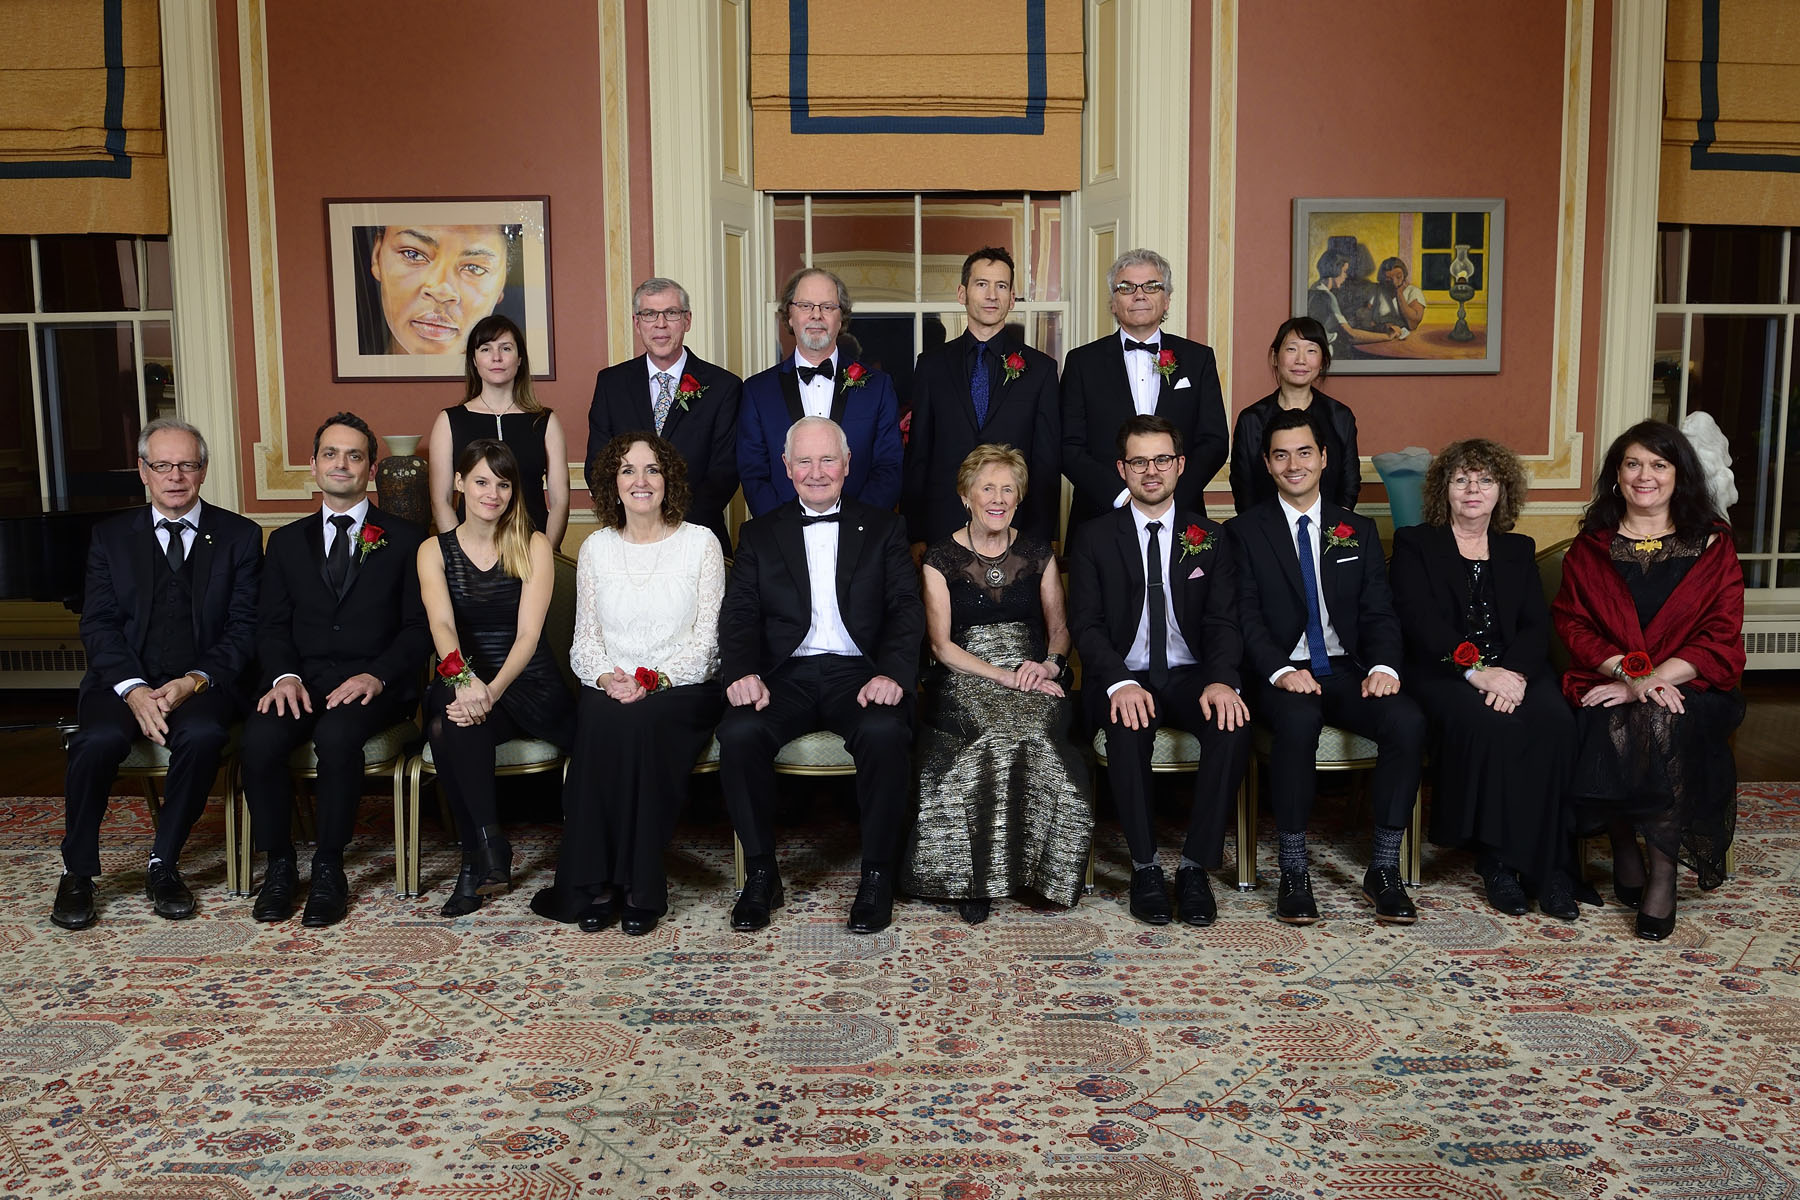 2016 laureates of the Governor General's Literary Awards.